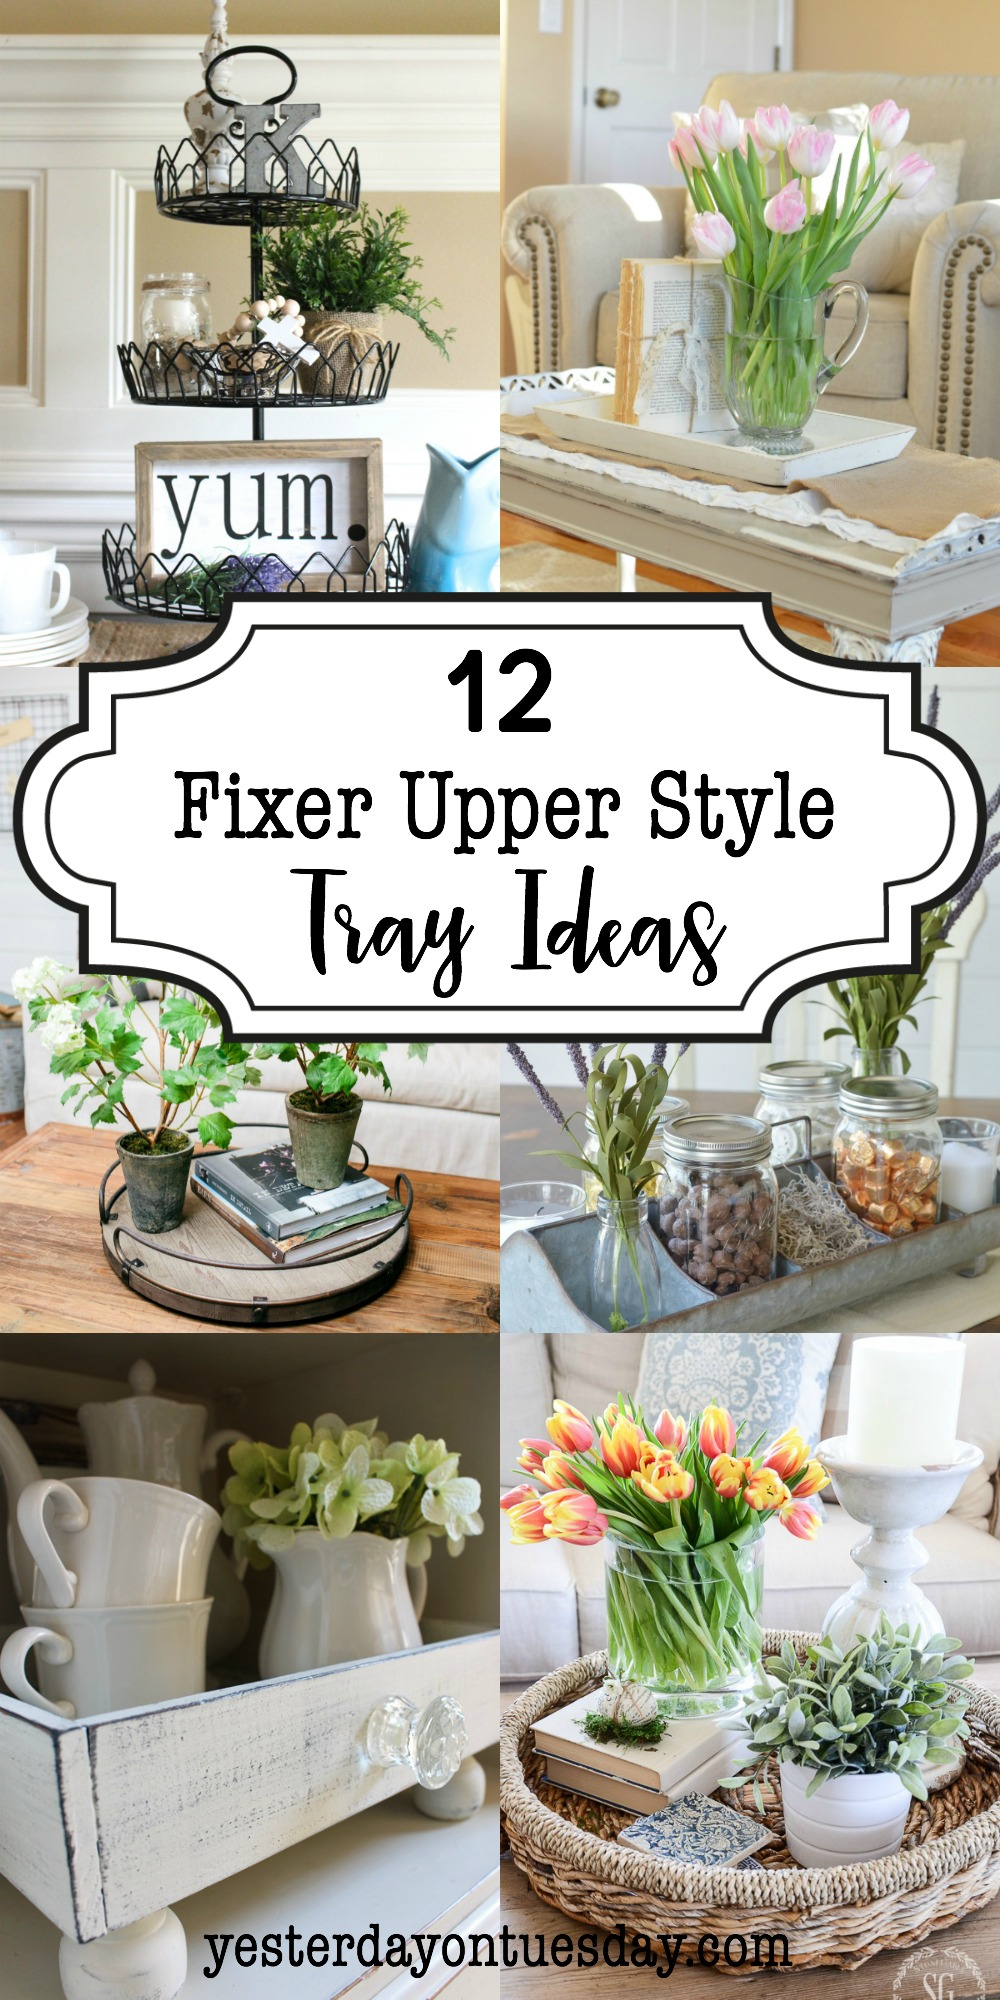 20 Farmhouse Ideas For Valentine S Day Yesterday On Tuesday